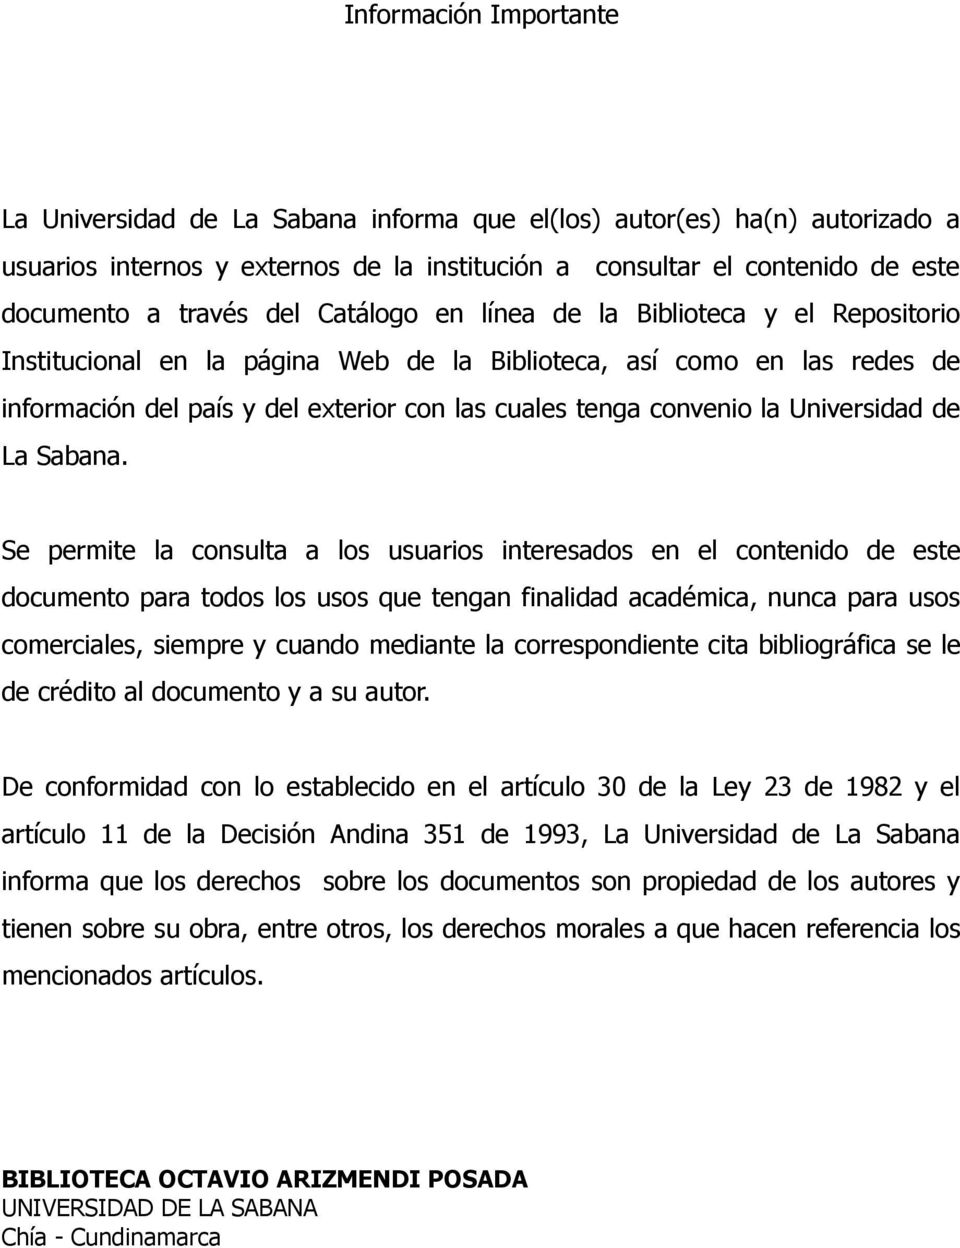 Universidad de La Sabana.